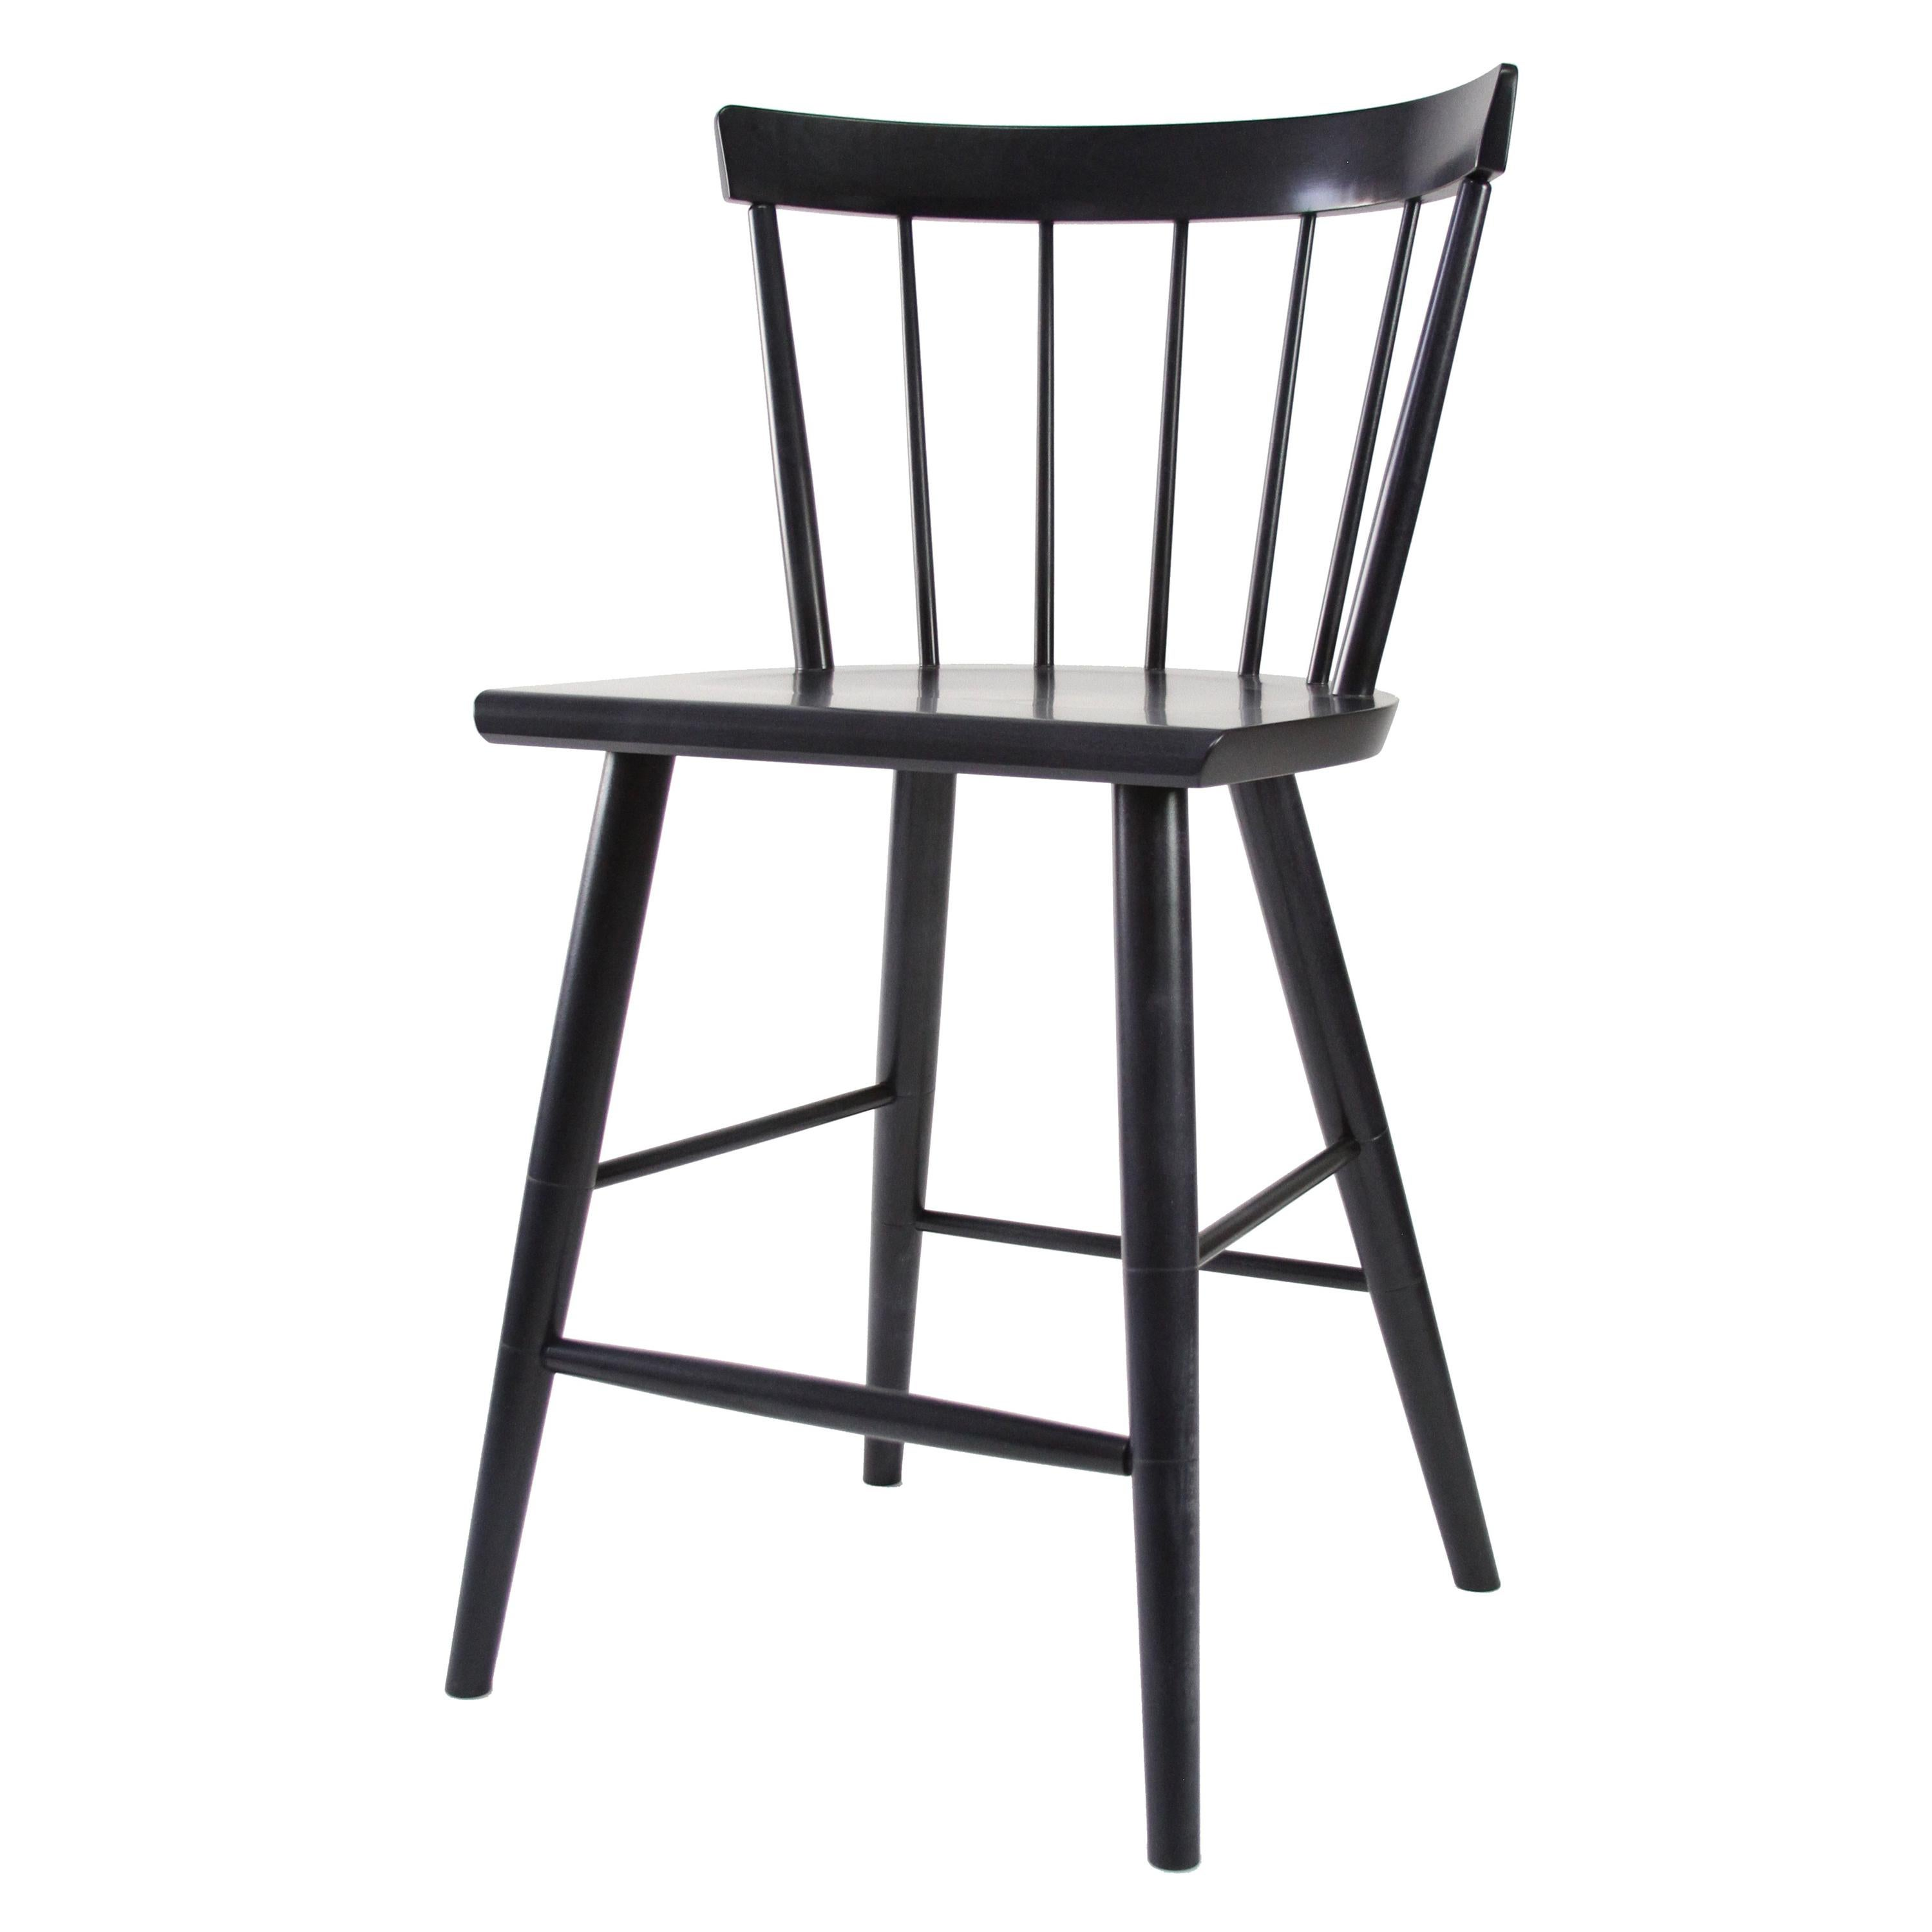 Incredible Colt Counter Stool Contemporary Windsor Stool For Sale At Unemploymentrelief Wooden Chair Designs For Living Room Unemploymentrelieforg